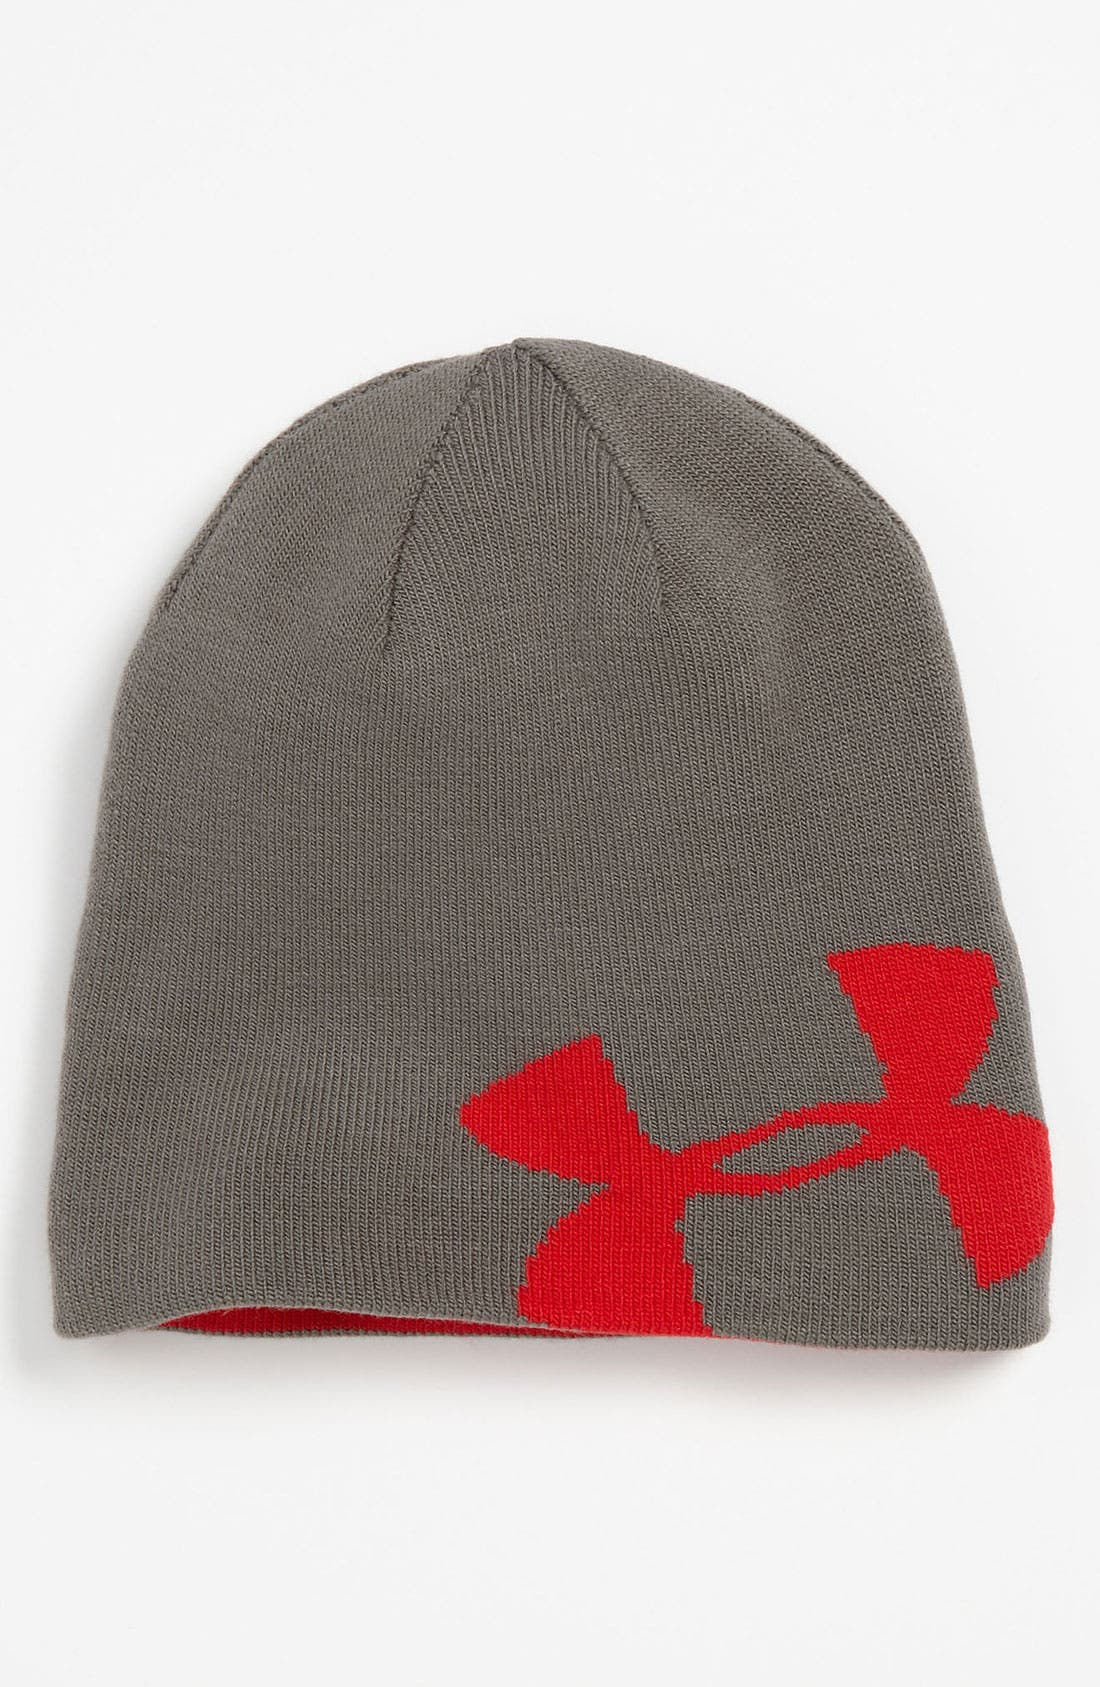 Alternate Image 1 Selected - Under Armour 'Switch It Up' Beanie (Big Boys)